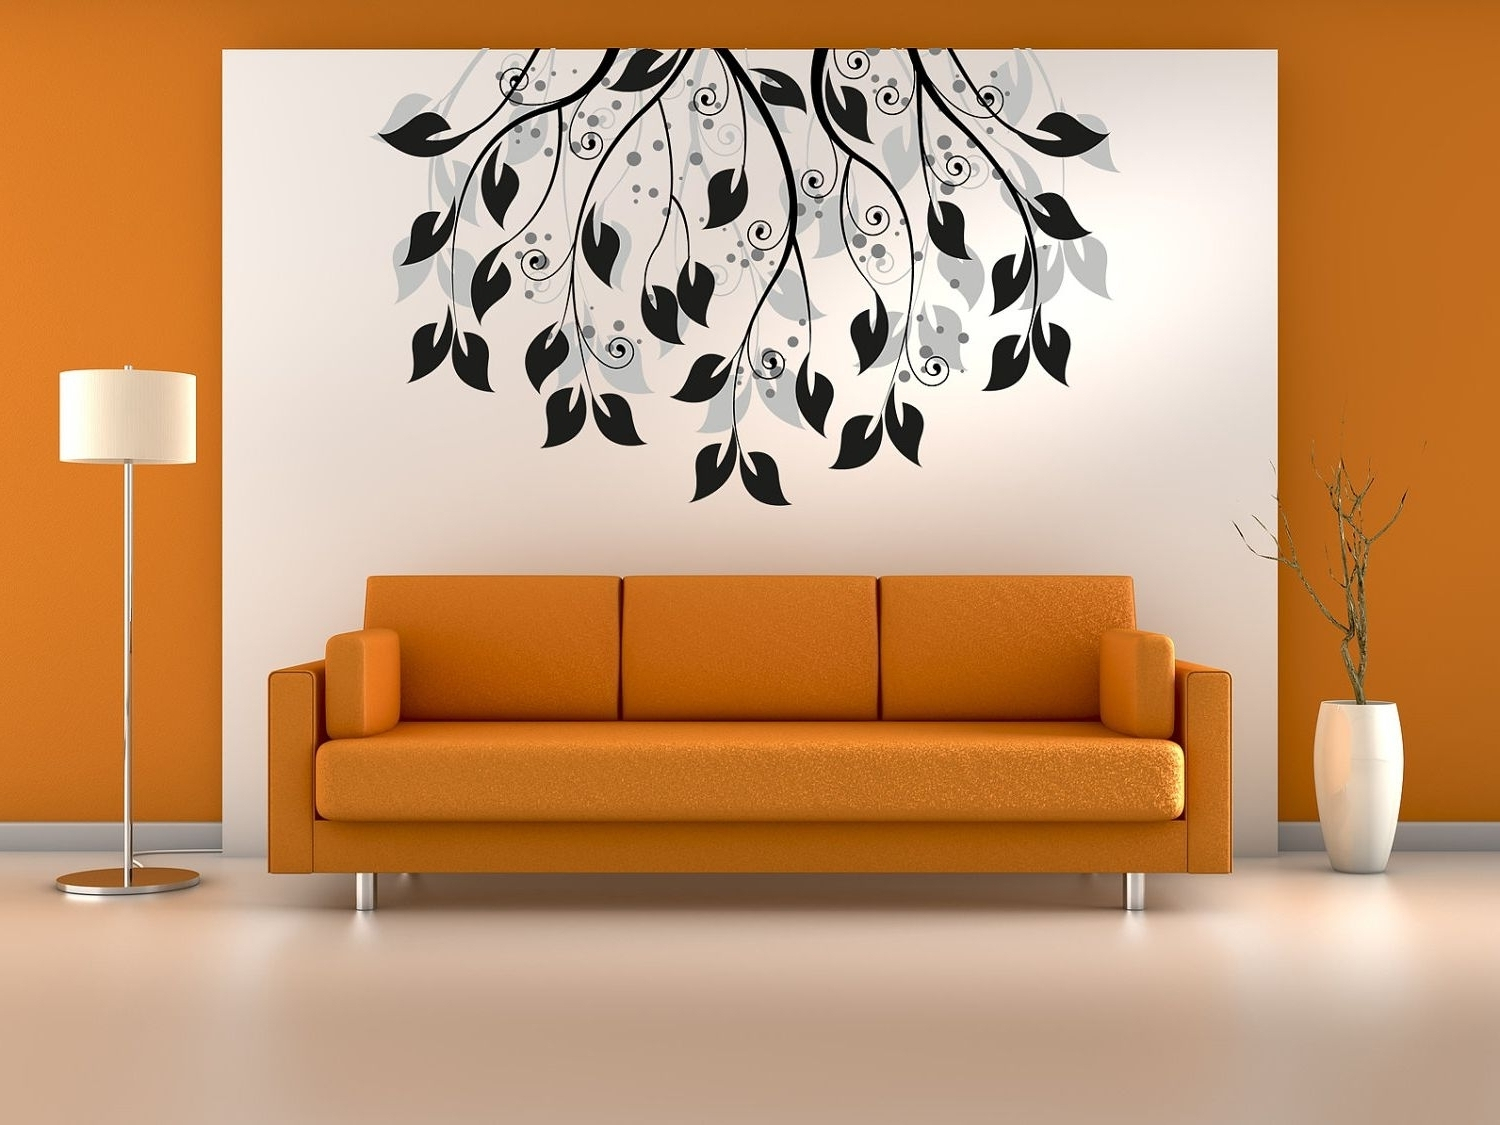 Popular Wall Art For Living Room Intended For Wall Art Designs: Living Room Wall Art Wall Art For Living Room (View 12 of 15)